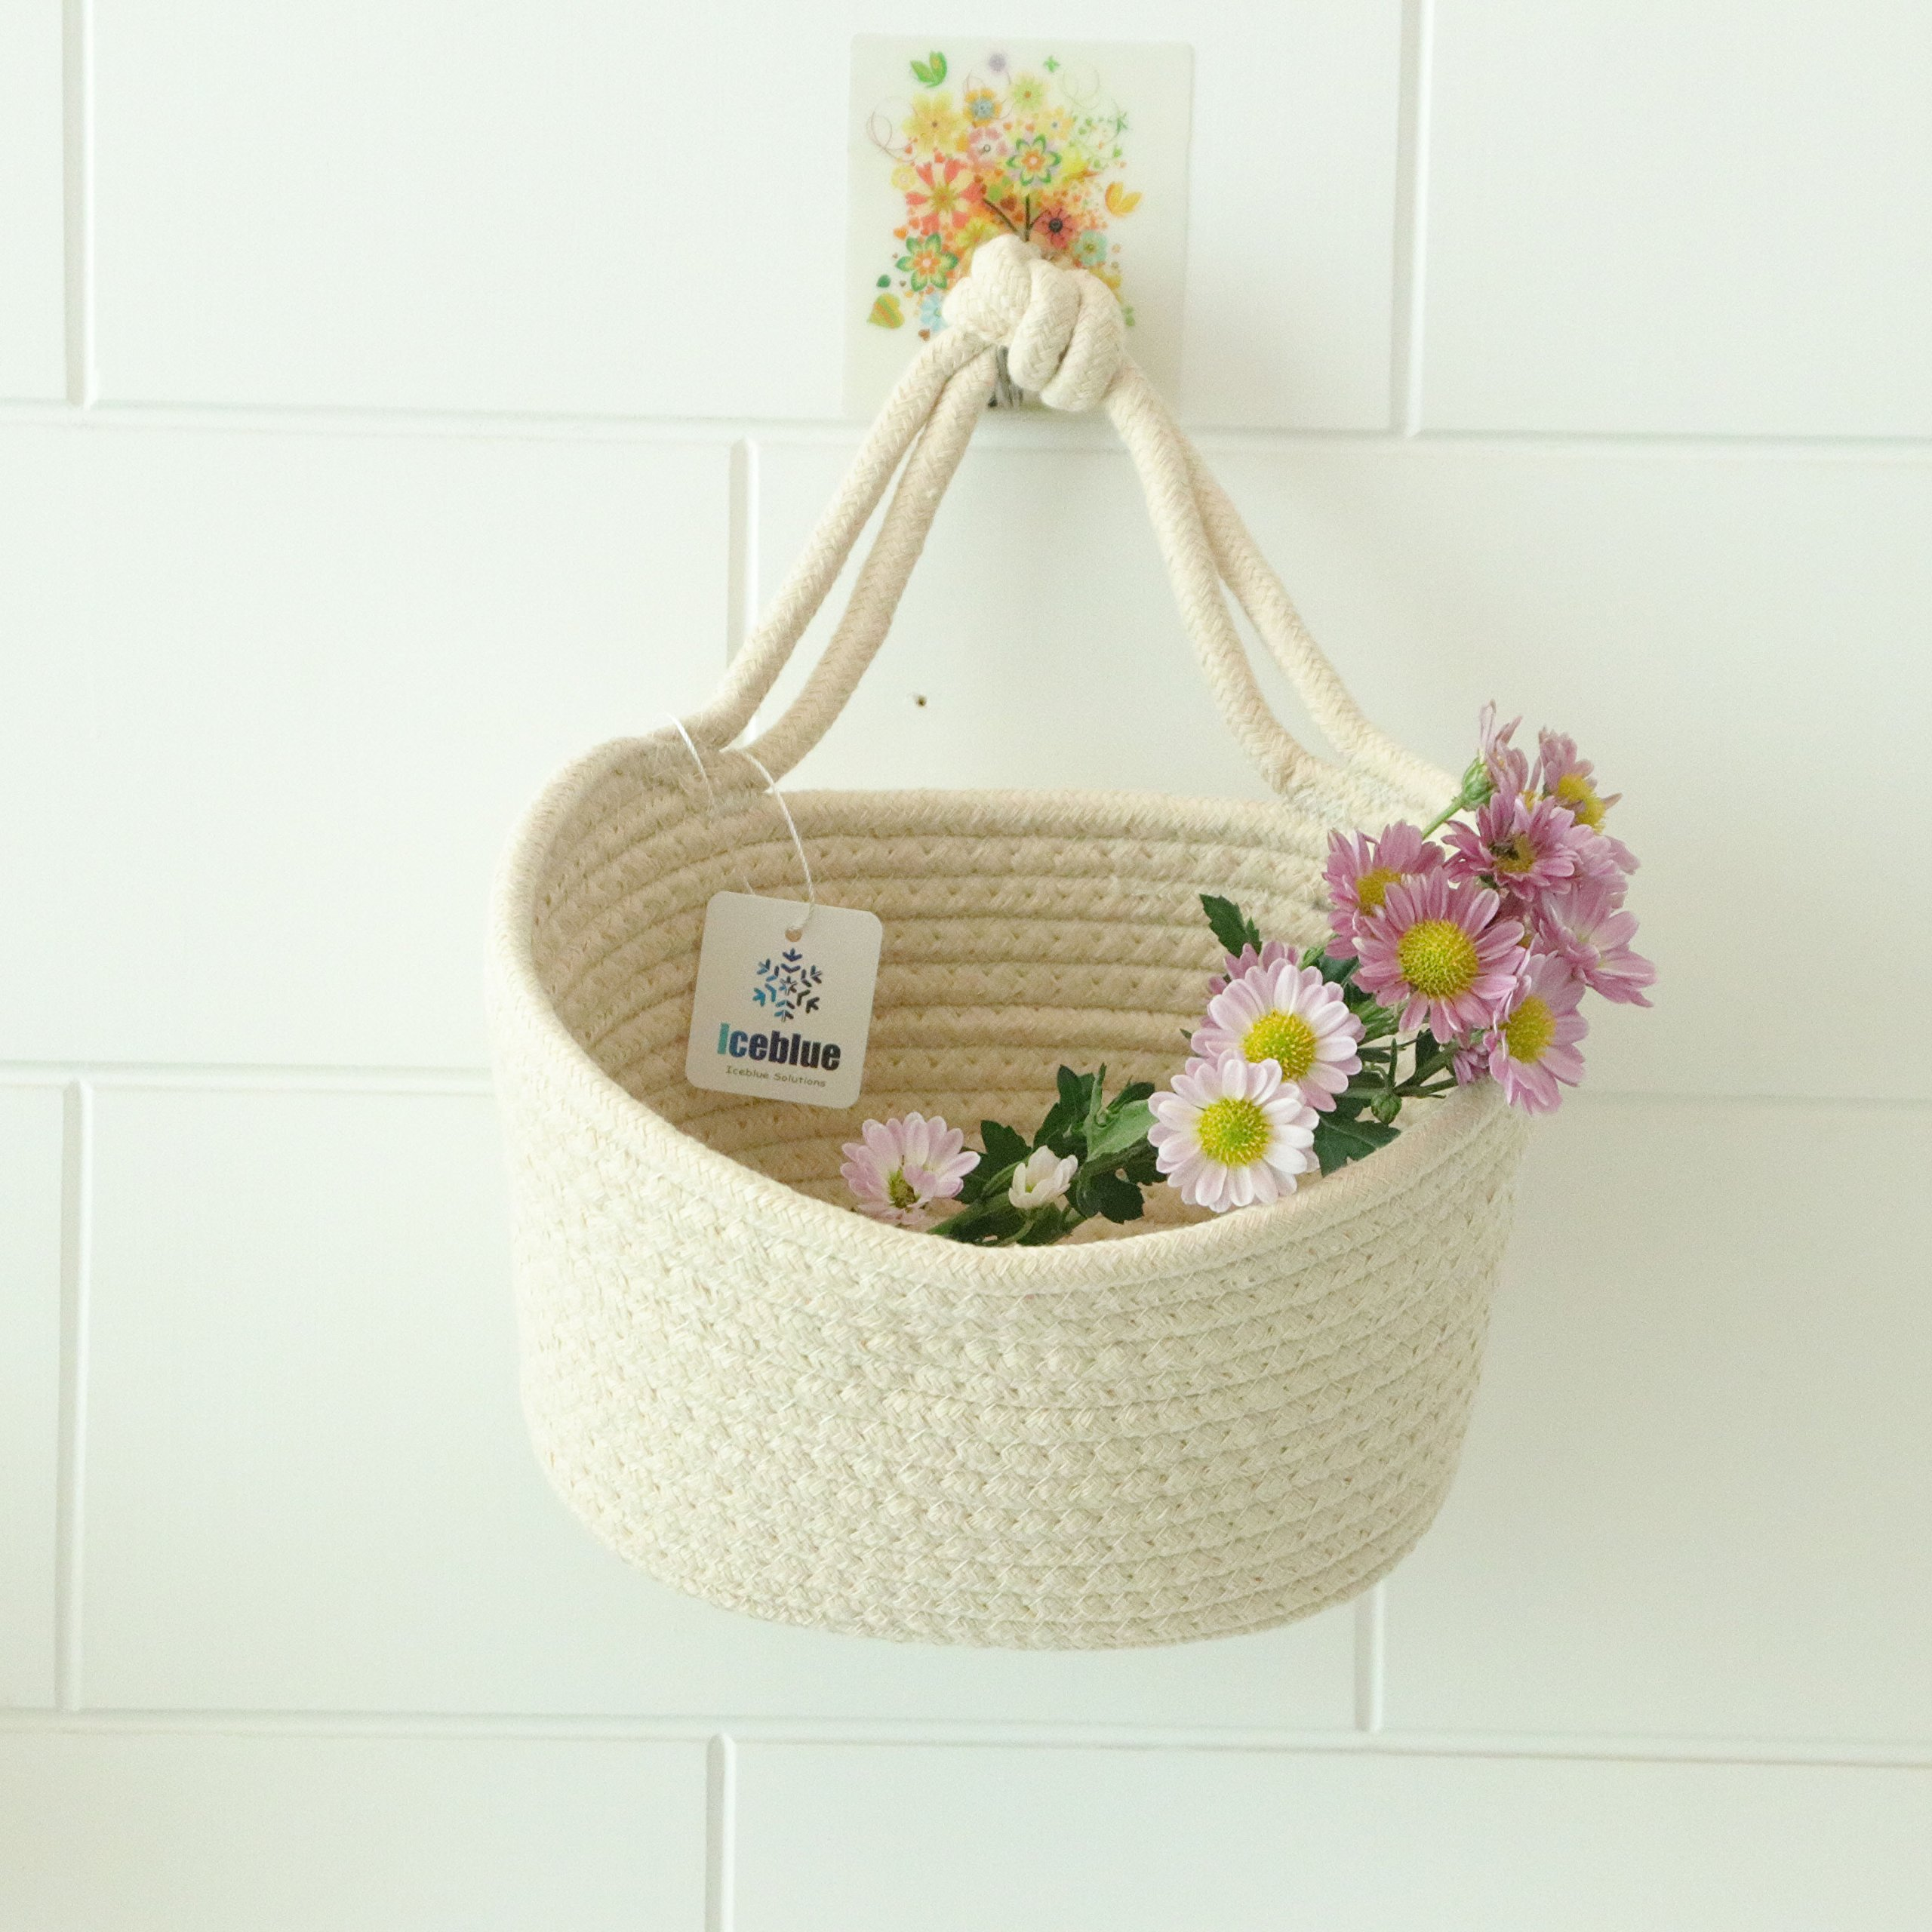 ICEBLUE HD Decorative Wall hanging organizer Closet Window Hanging Storage Basket Storage Bin